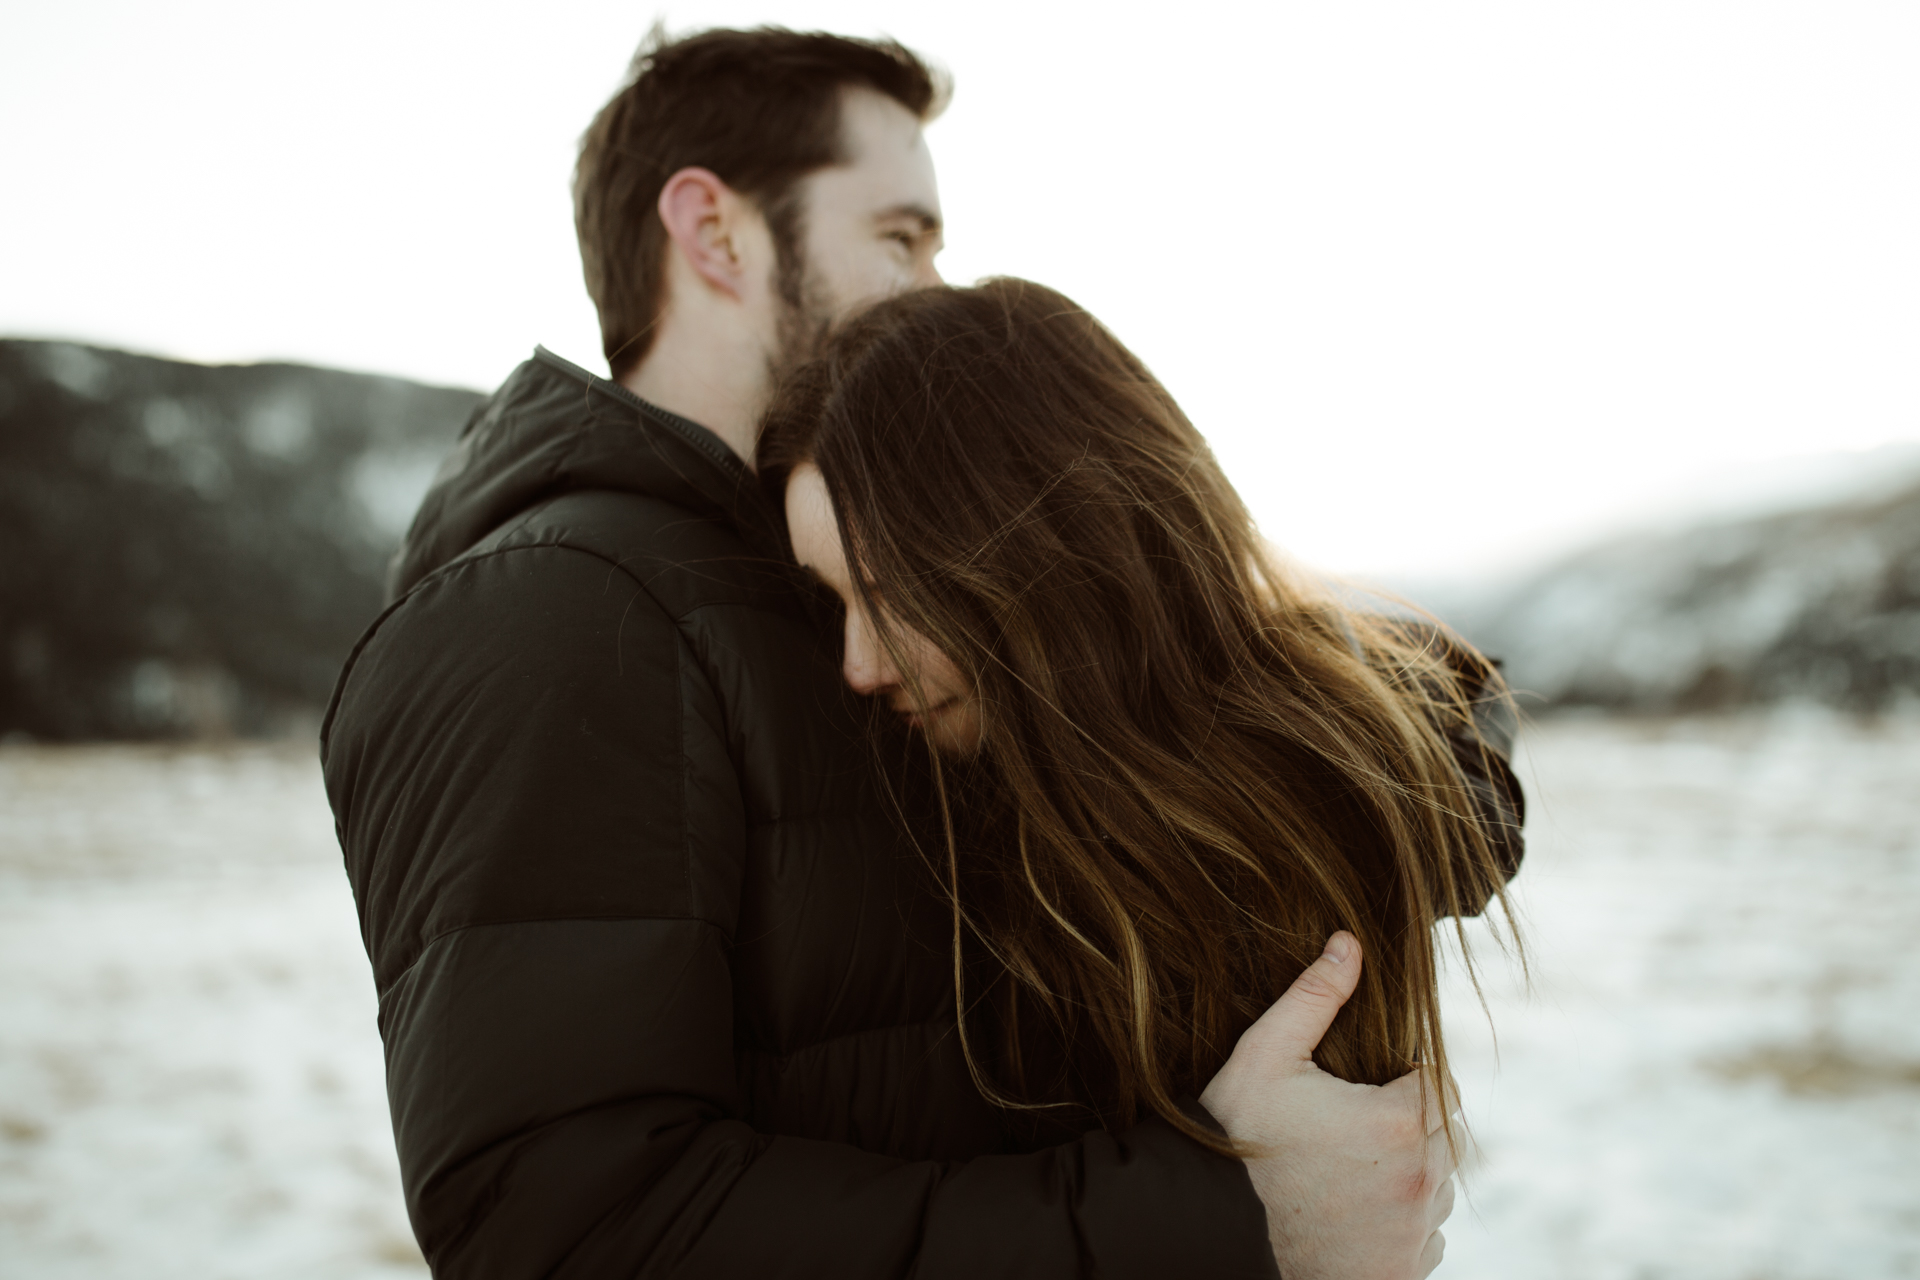 cedarpines park personals Browse online personals in cedarpines park personals cedarpines park is your #1 online resource for finding a date in cedarpines park with our free online personal.